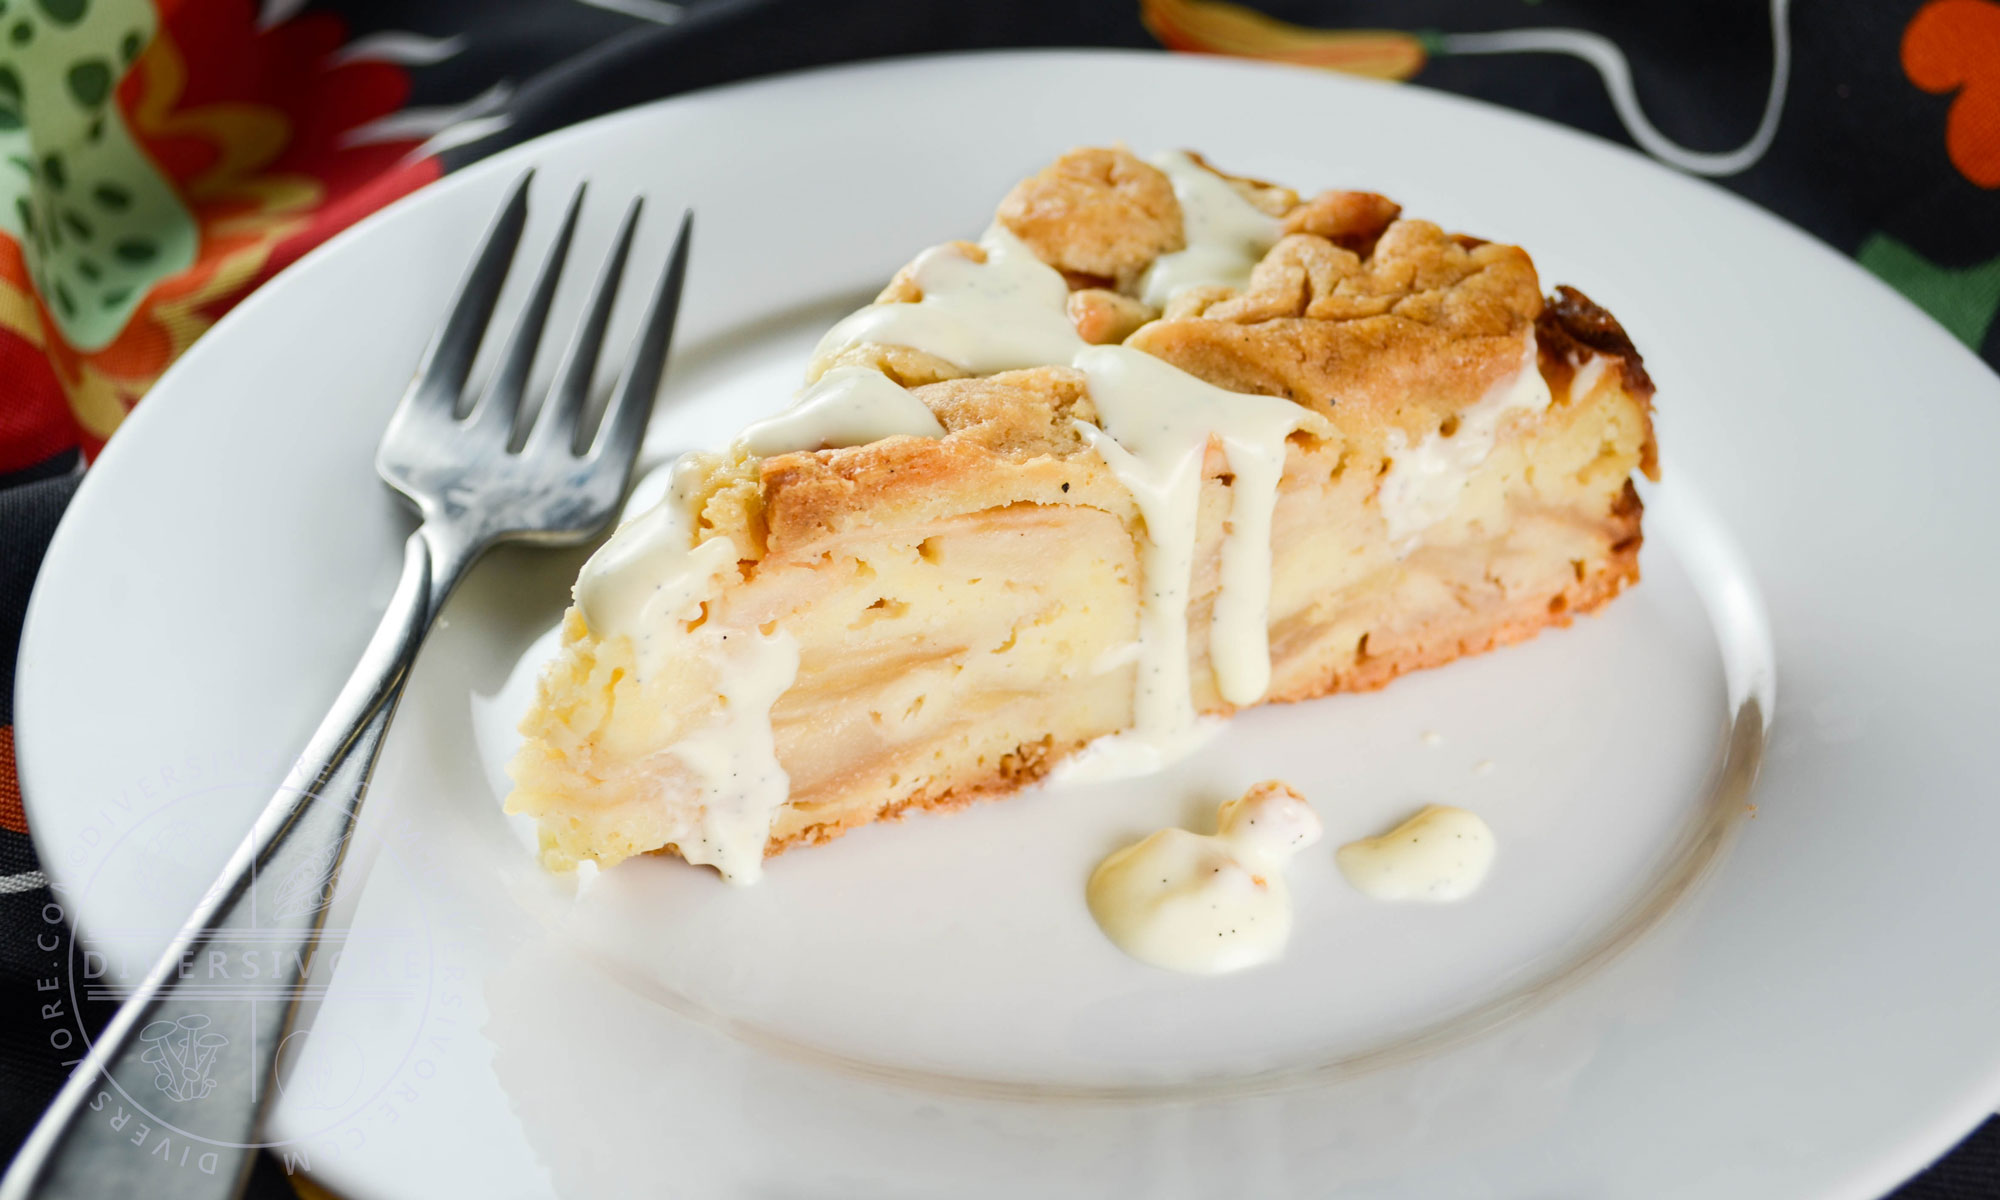 Swedish Apple Cake (or Swedish Apple Pie) - a simple pie crust bottom, apple and almond filling, and deliciously simple vanilla sauce - Diversivore.com